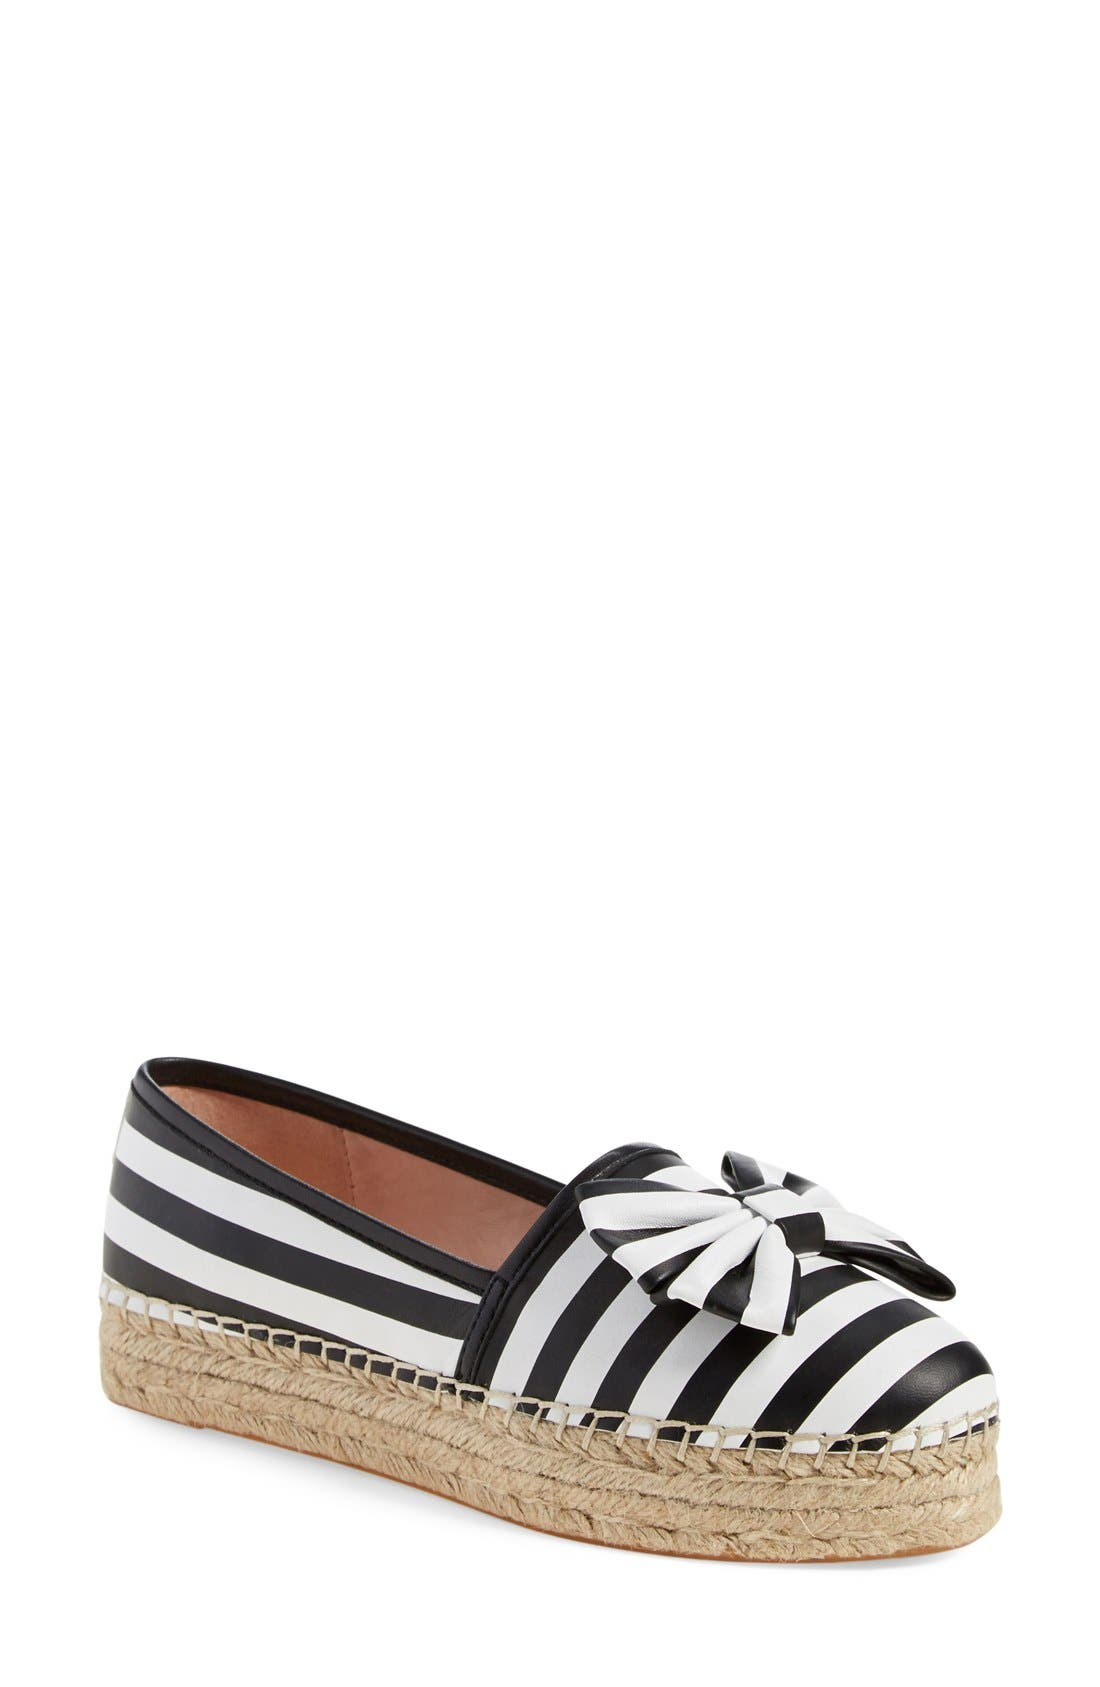 Alternate Image 1 Selected - kate spade new york 'linds' bow espadrille (Women)